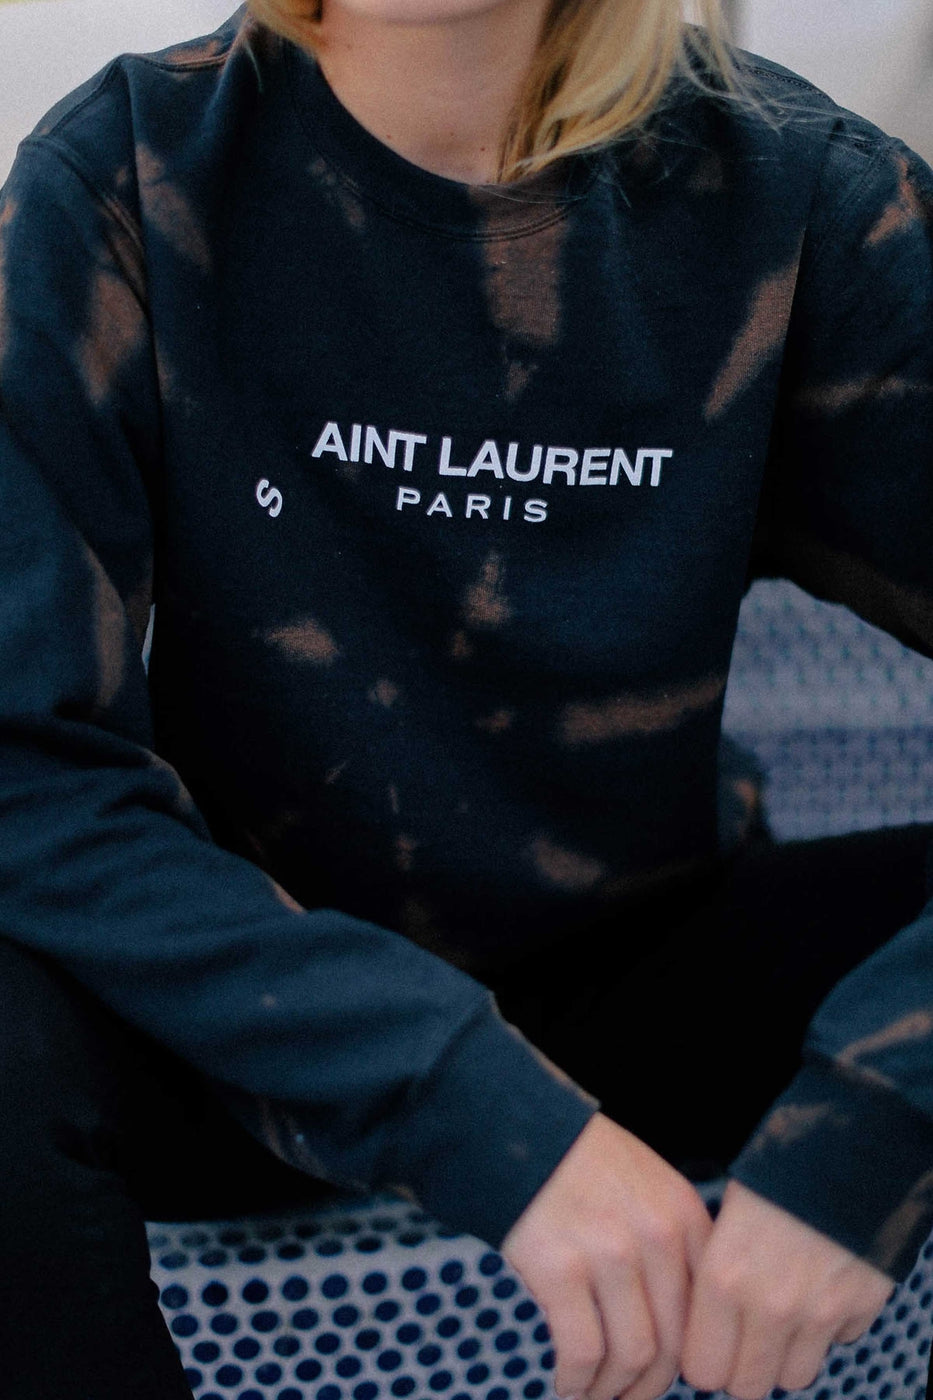 Ain't Laurent Crew